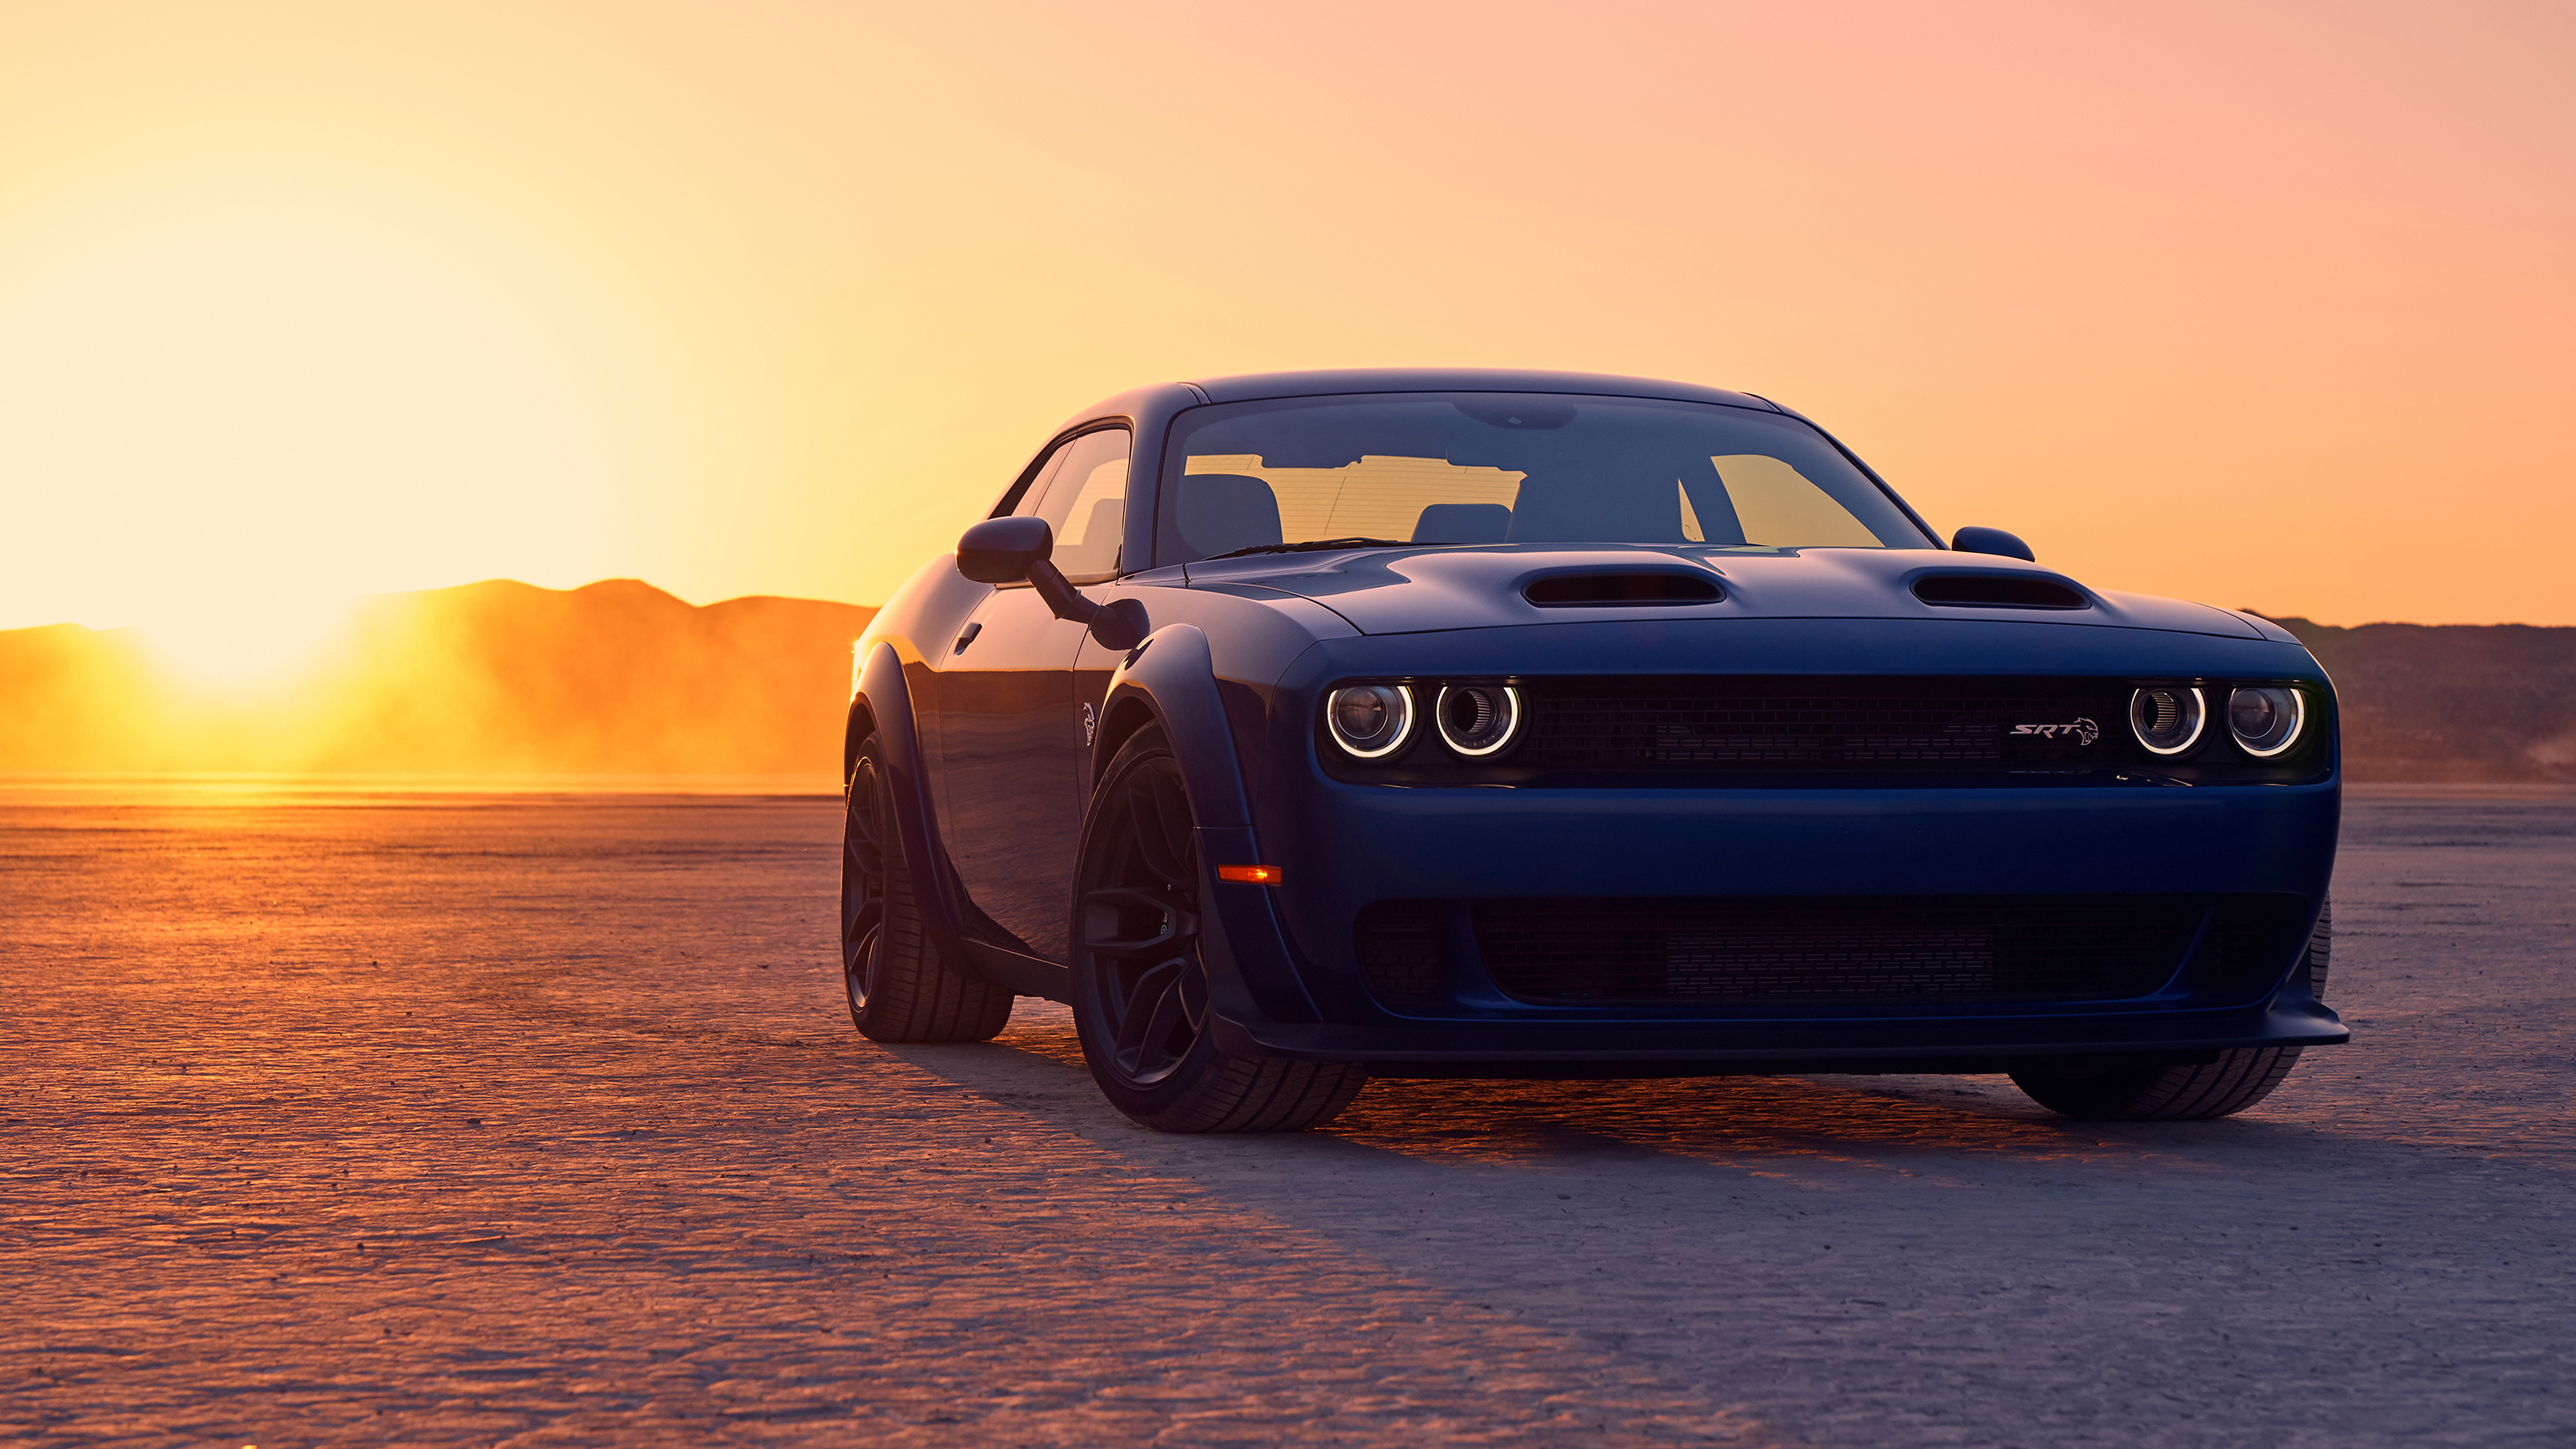 2019 Dodge Challenger SRT Hellcat Widebody Wallpapers